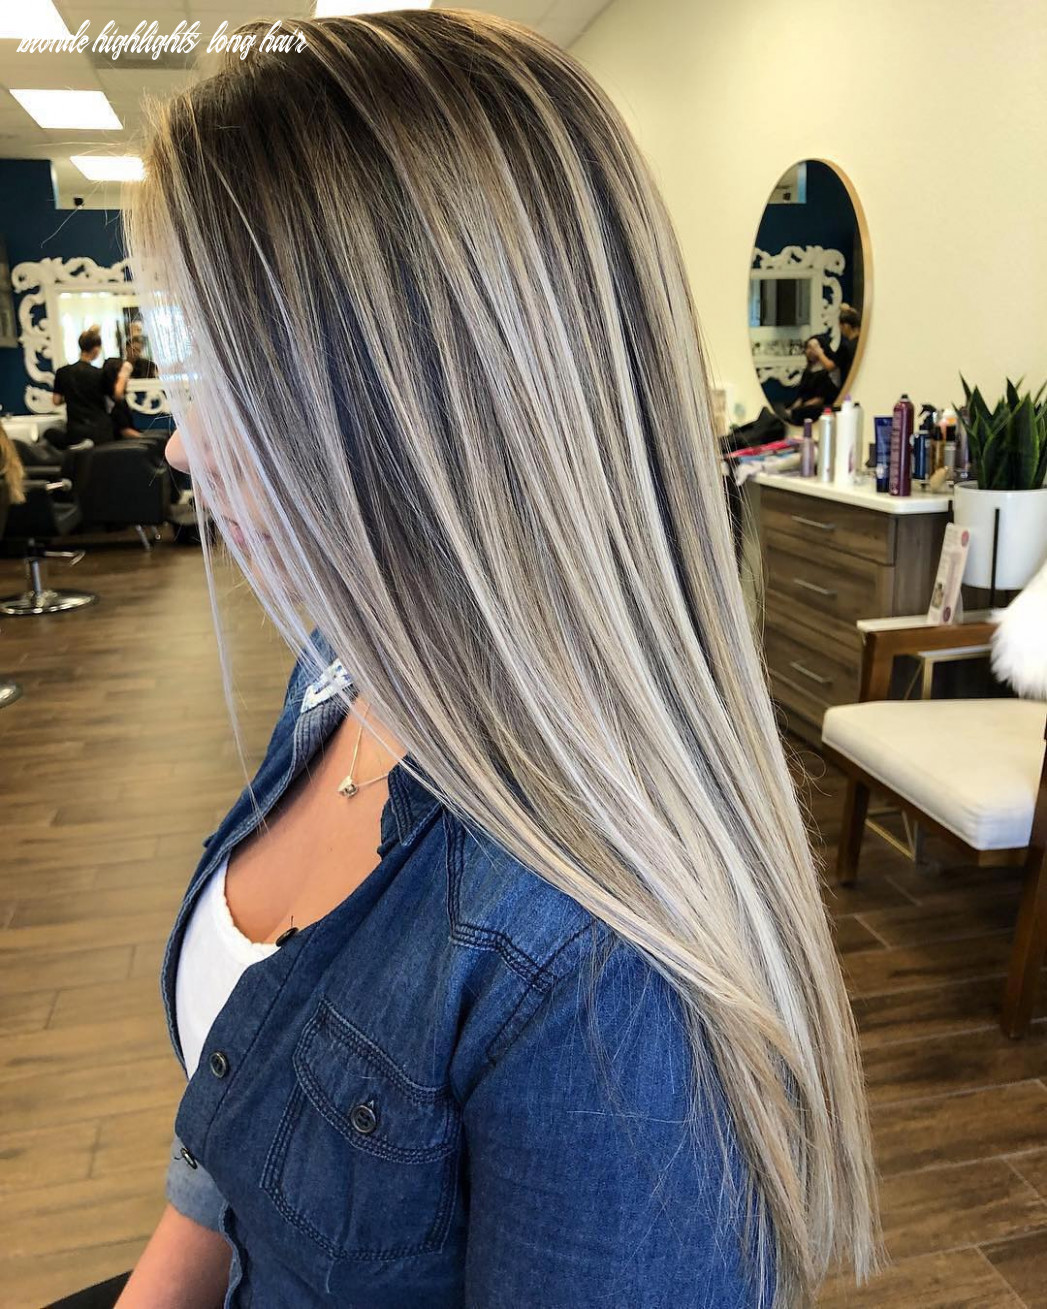 11 balayage ombre long hair styles from subtle to stunning, long